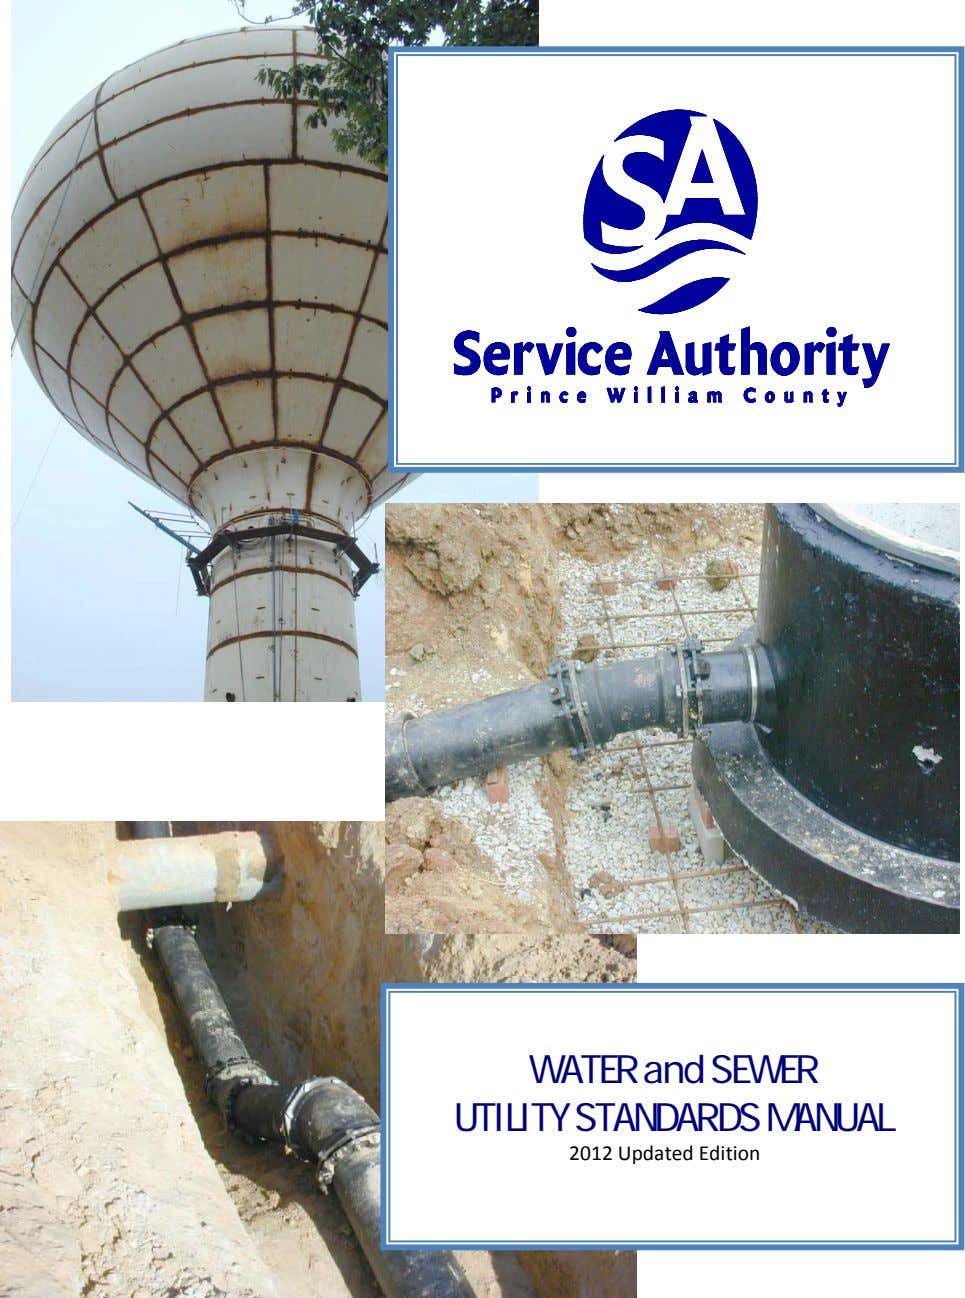 WATER and SEWER UTILITY STANDARDS MANUAL 2012 Updated Edition